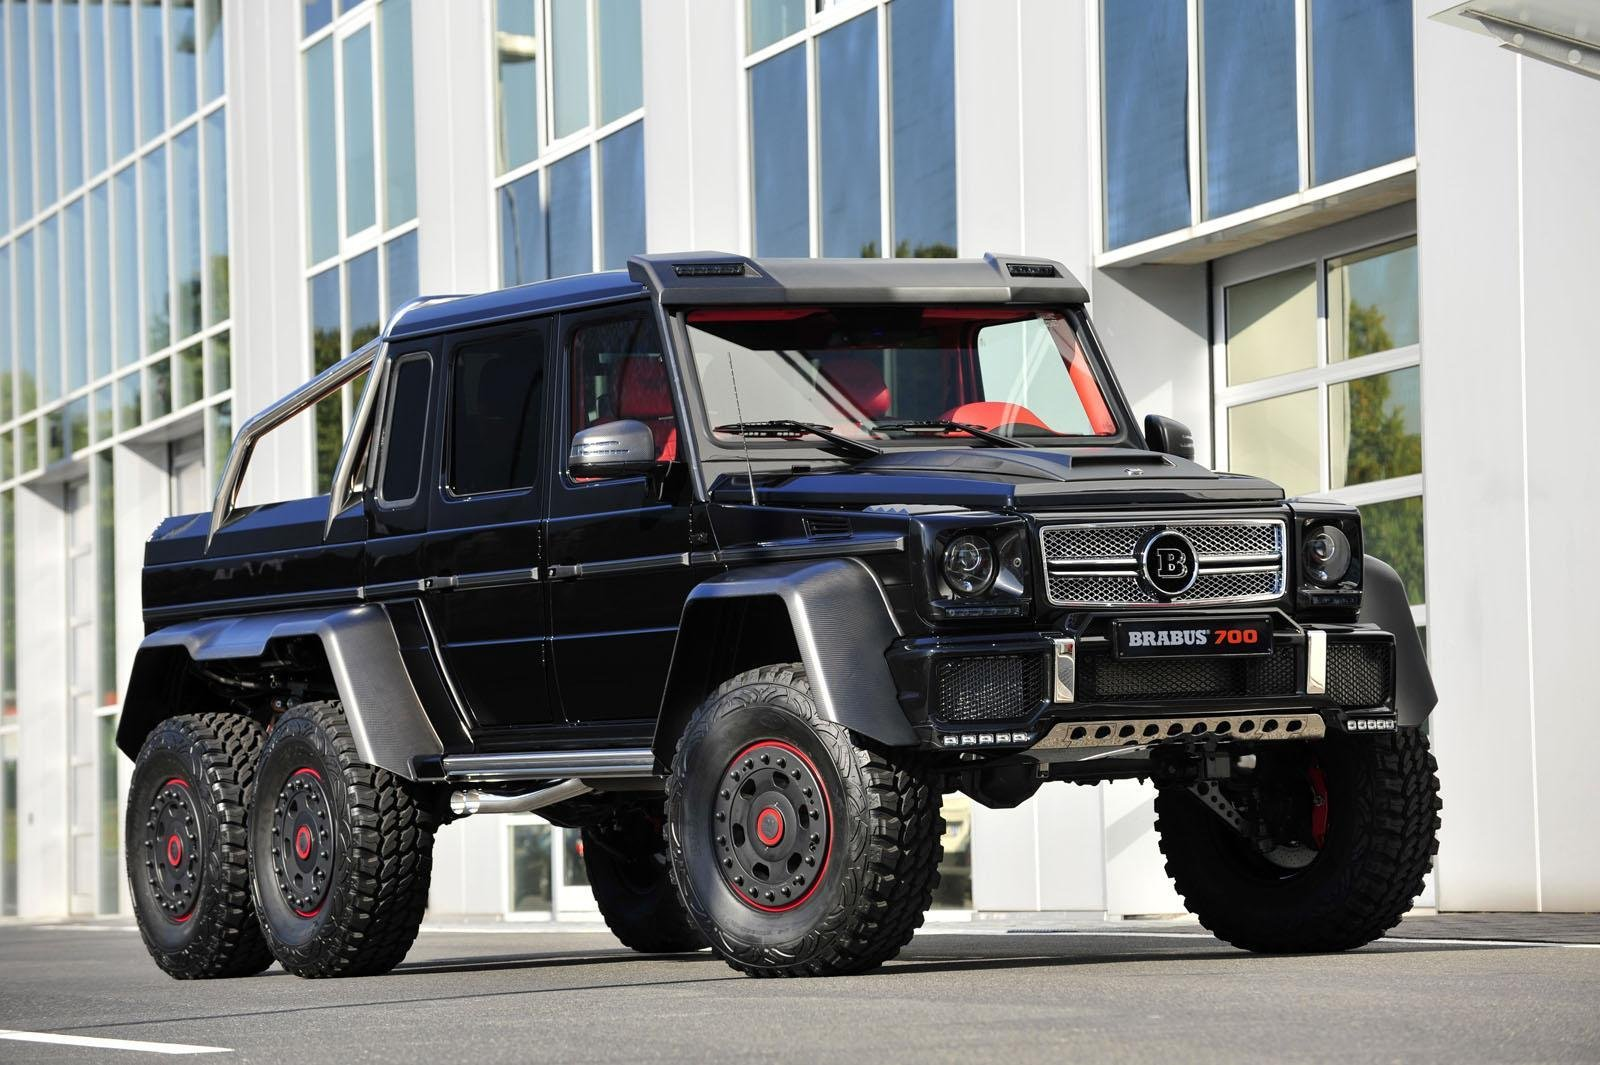 2013 mercedes benz g63 amg 6x6 b63s 700 by brabus for Mercedes benz amg g63 6x6